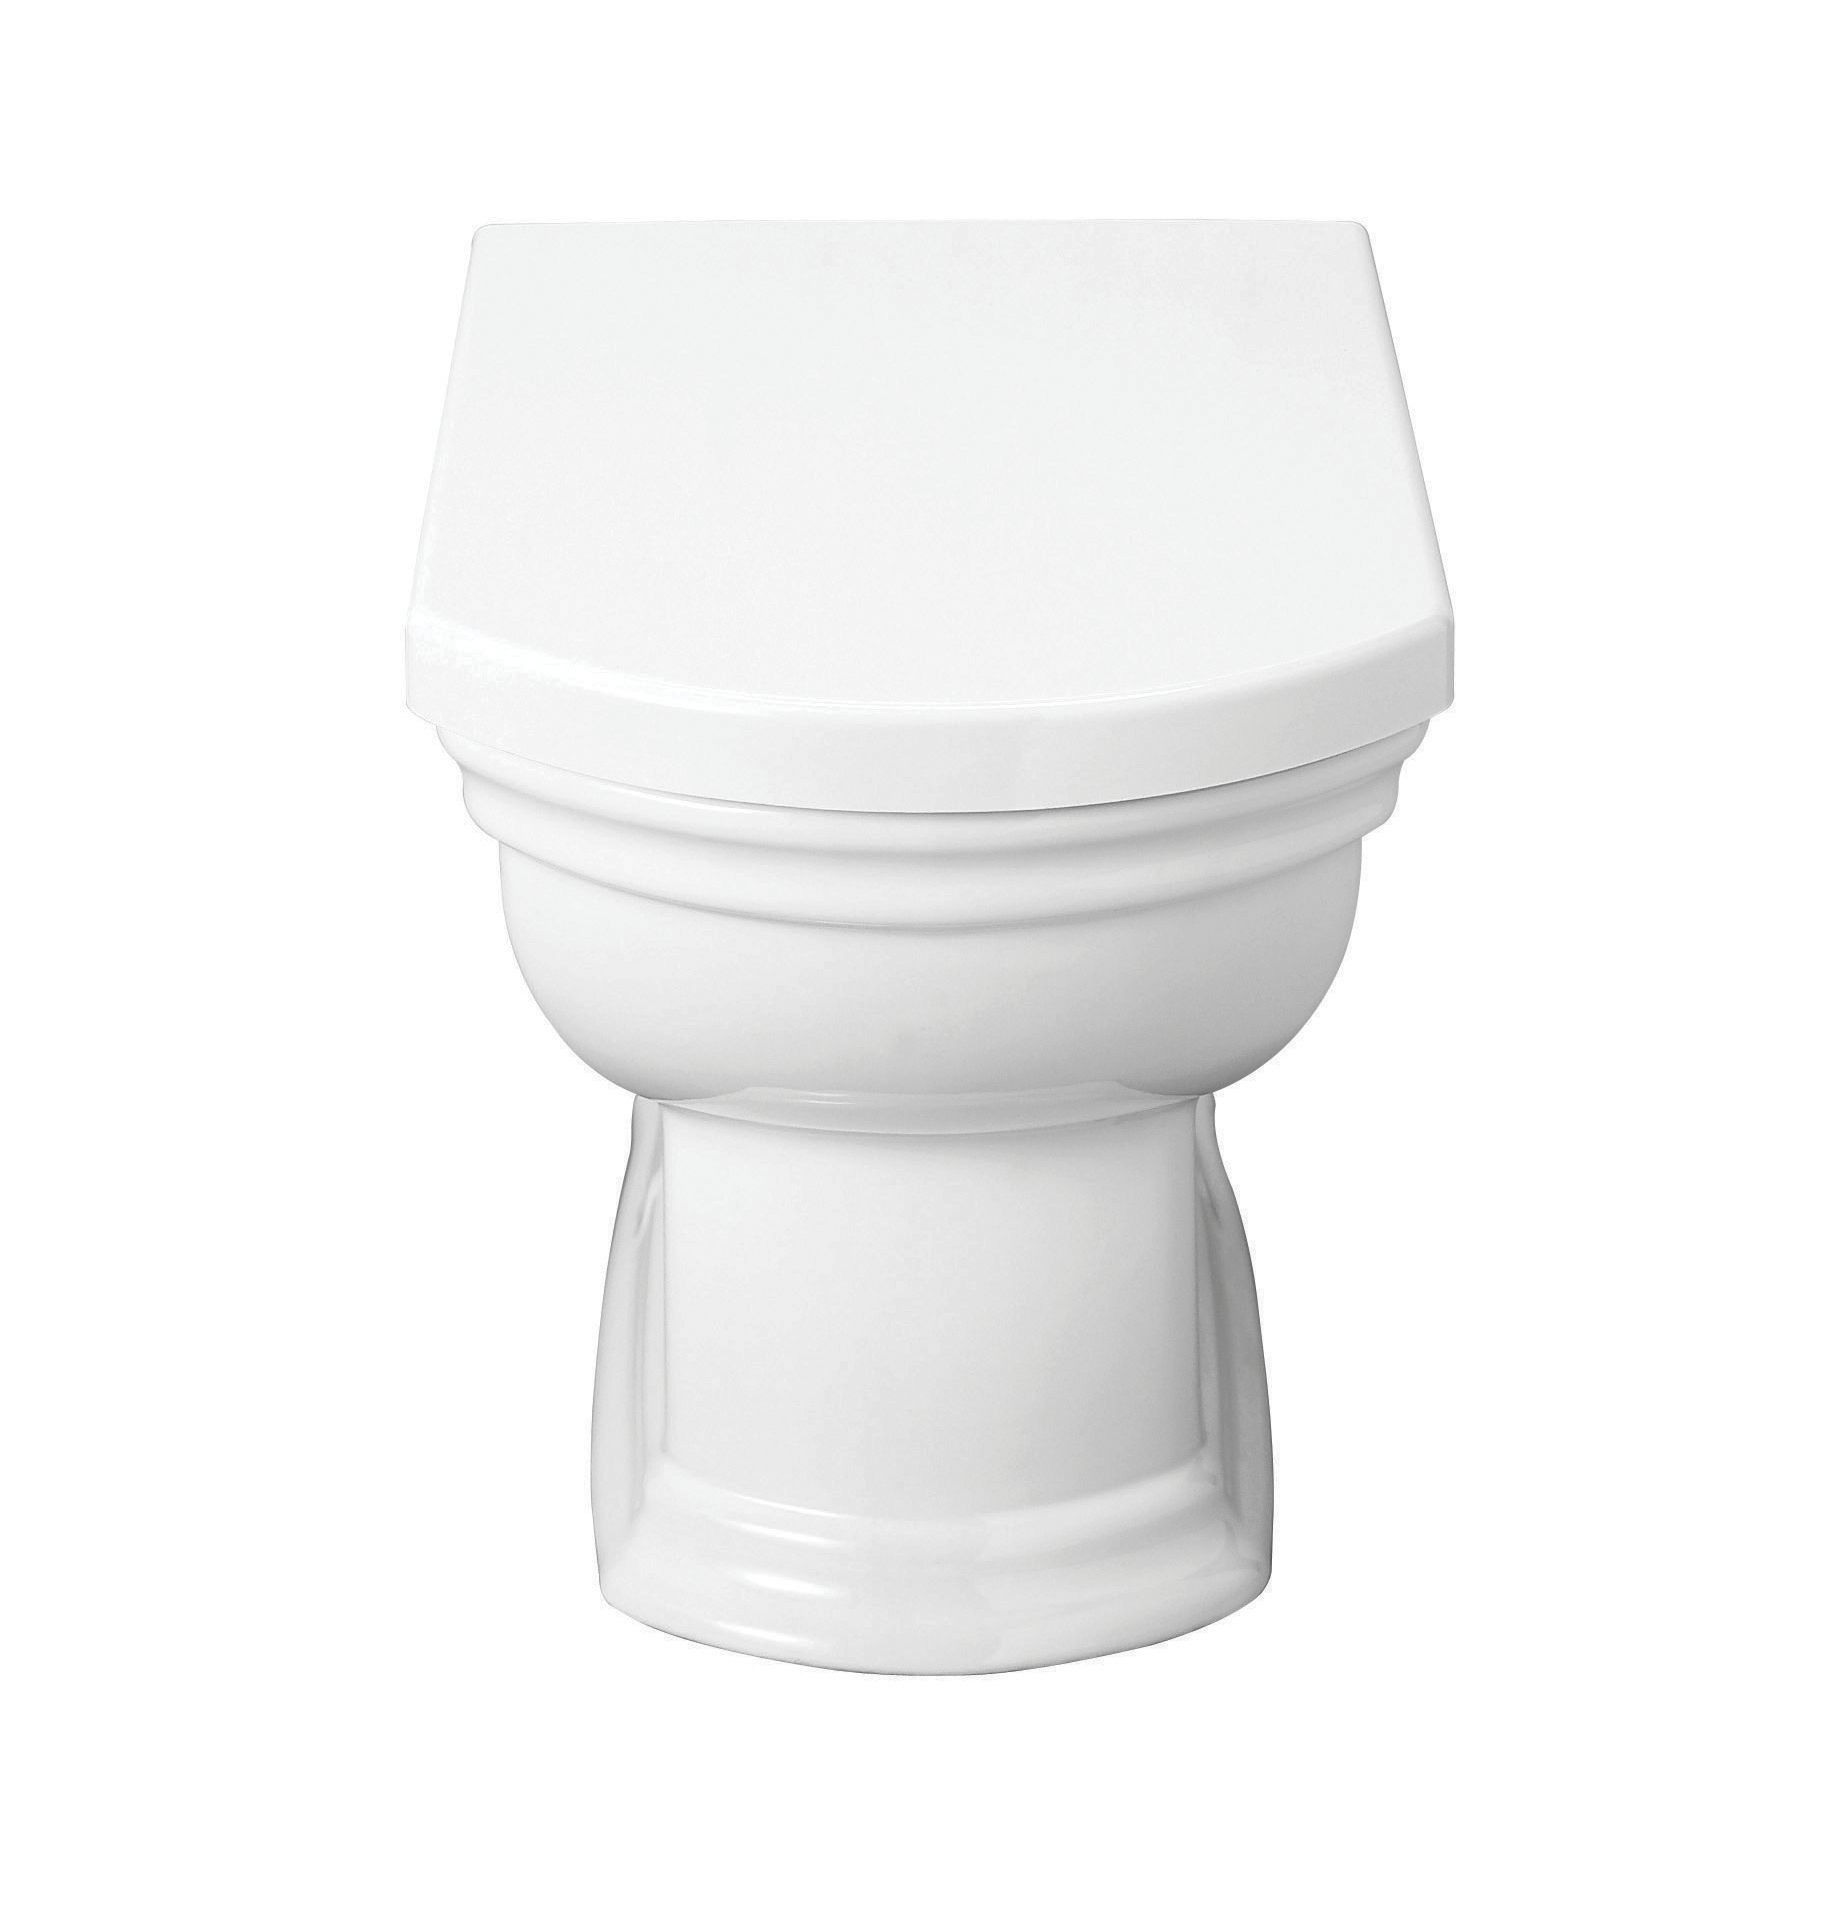 Wickes Belize Ceramic Back To Wall Pan With Toilet Seat by Wickes